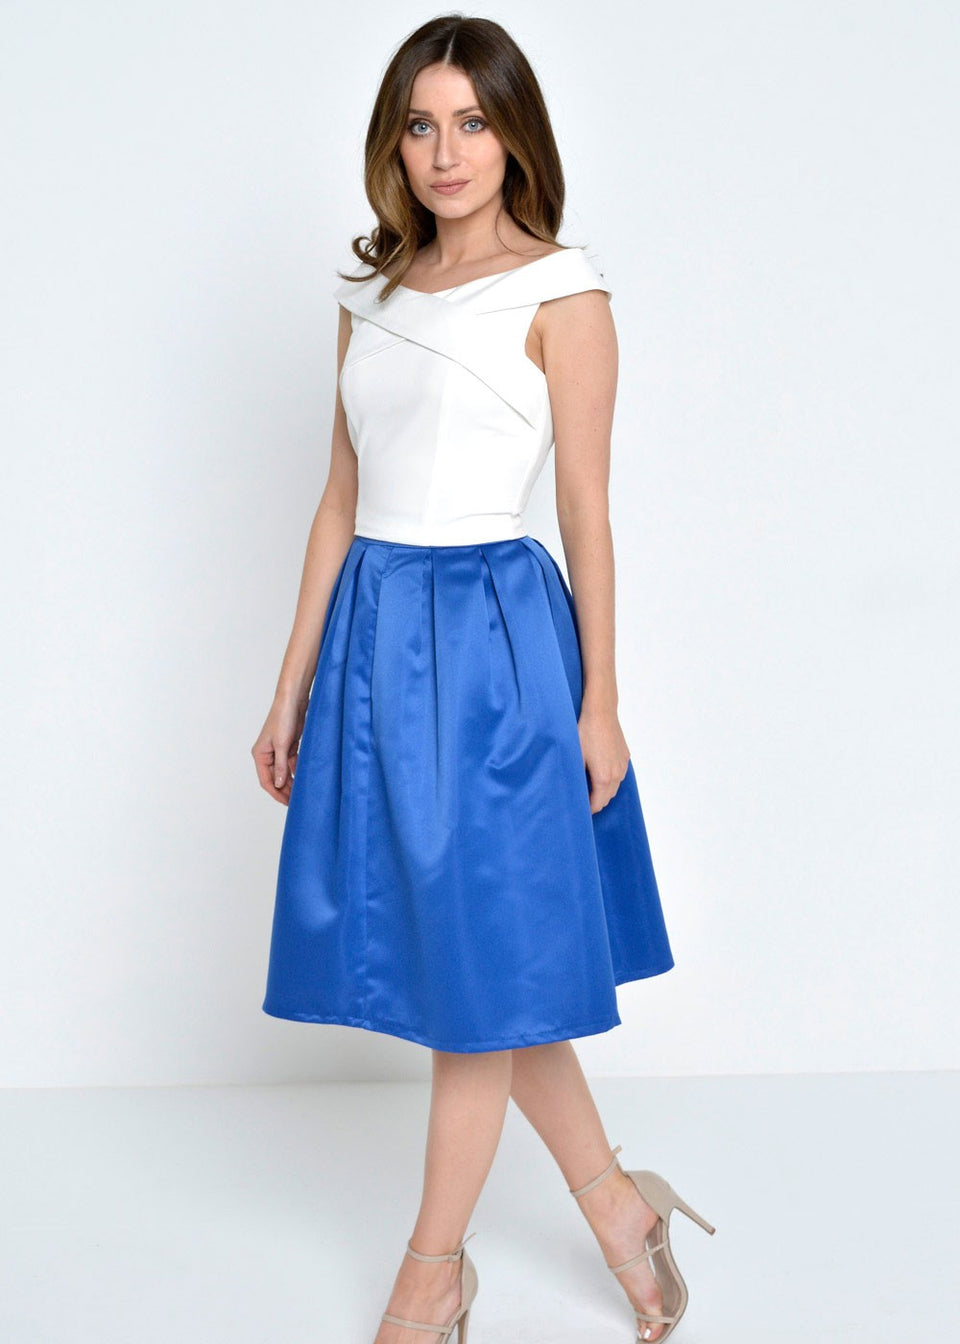 cae7874c801637 Marc Angelo Skirts Collection